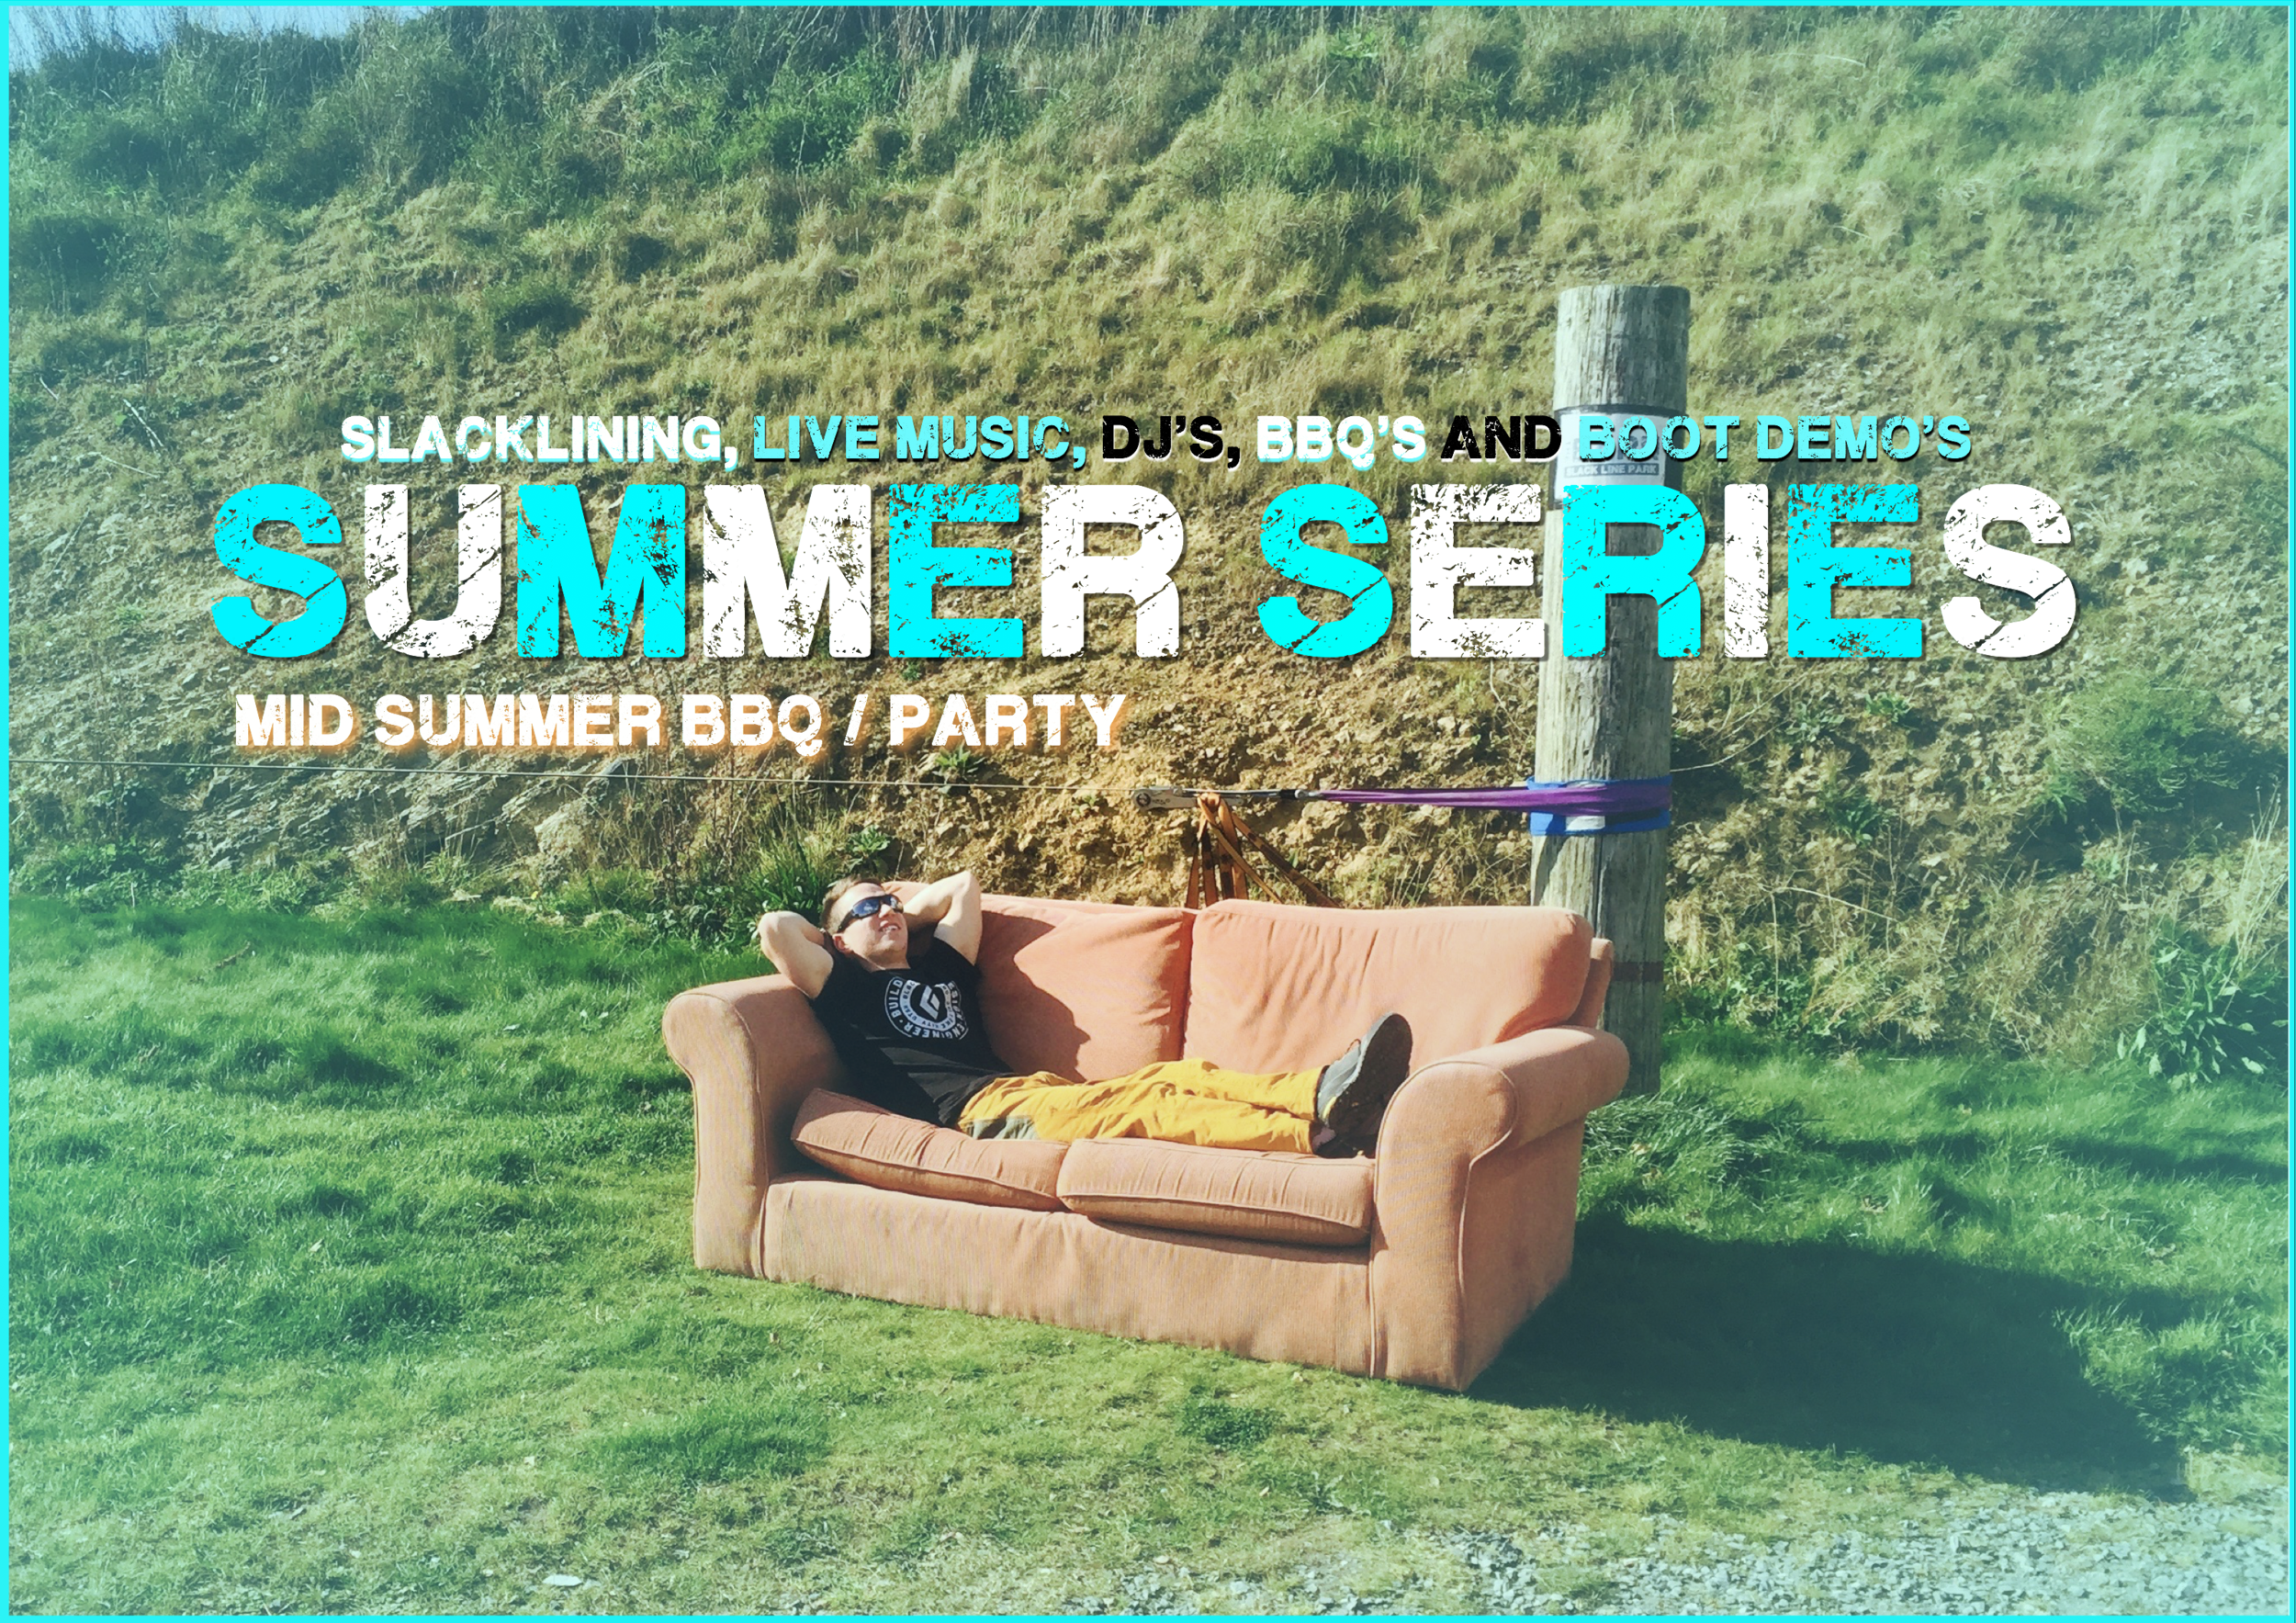 THE SUMMER SERIES - Summer is here and The Barn Climbing Centre brings you its annual Summer Series. 2 x two week rounds of bloc projecting for you to get your teeth into. Together with our mid summer BBQ and party.